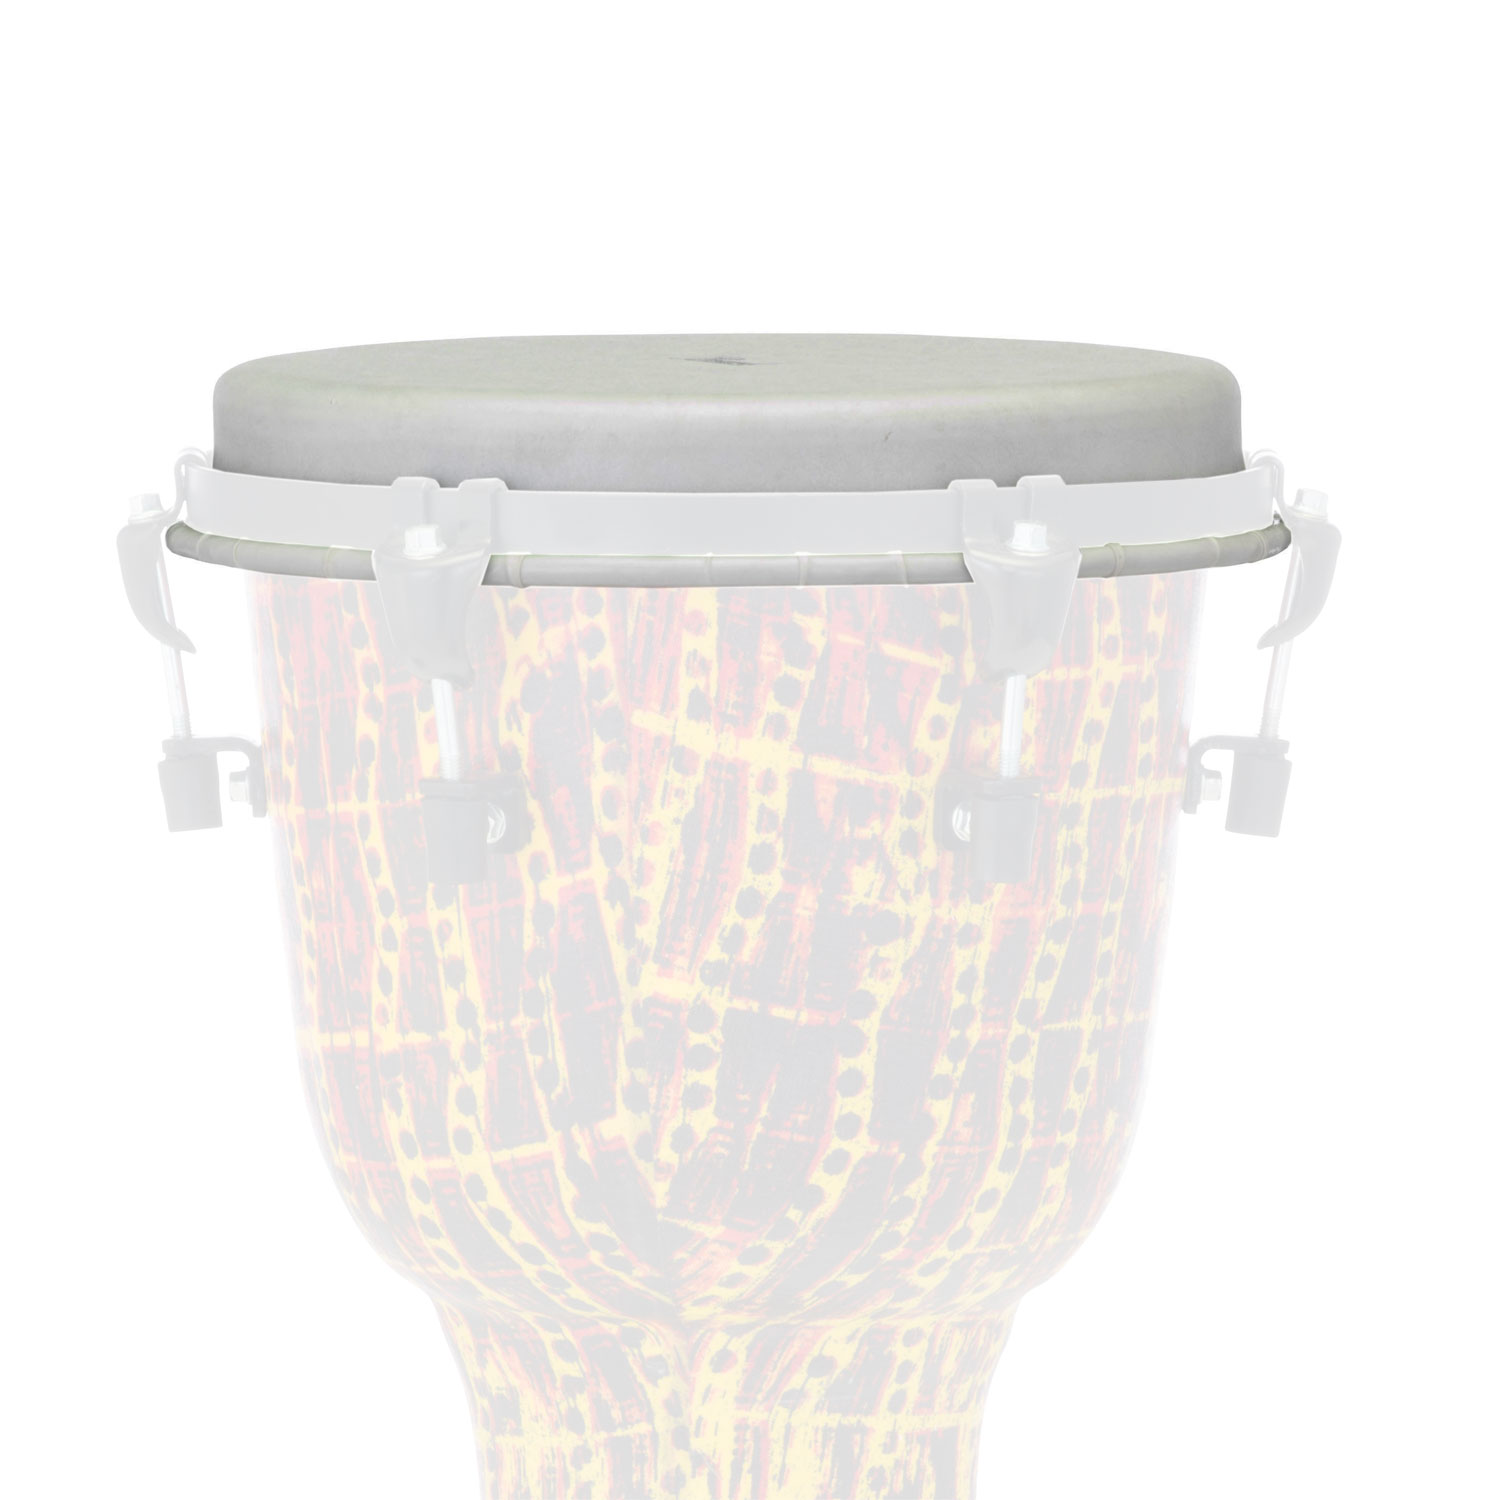 "Pearl Synthetic Head for 14"" Top Tuned Djembe"